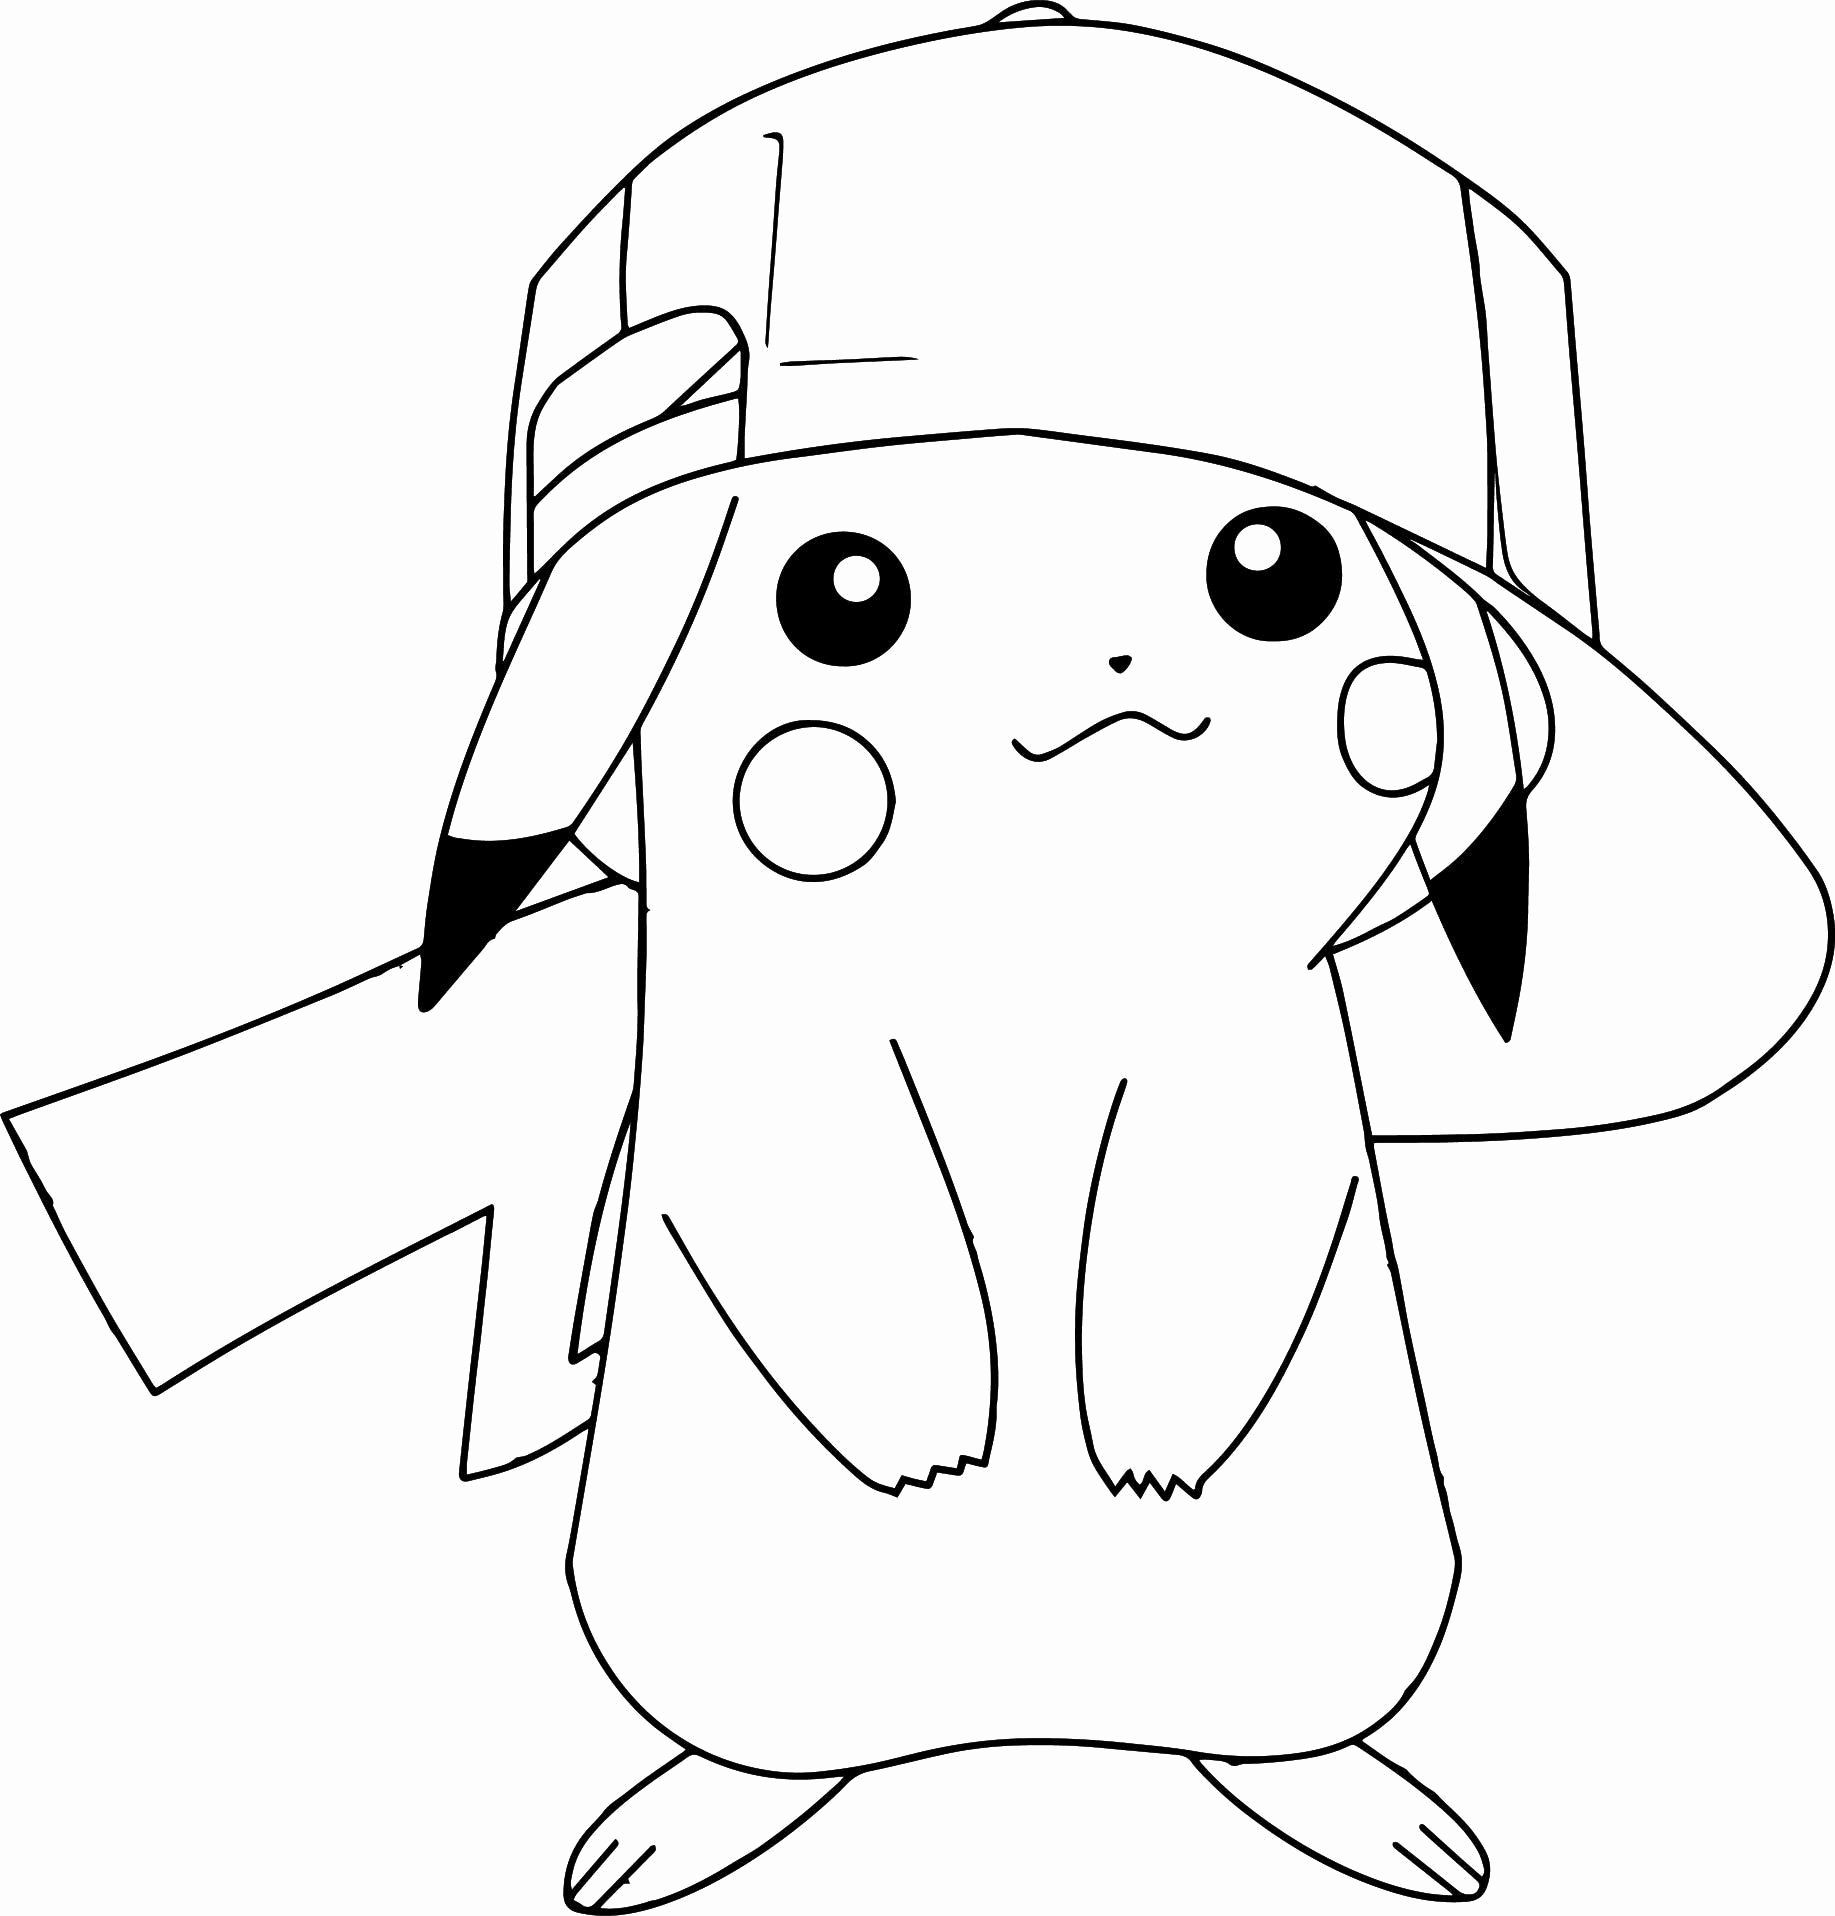 Coloring Pages 90s Cartoons Awesome Pin On Doodles Pikachu Coloring Page Cartoon Coloring Pages Pokemon Coloring Sheets